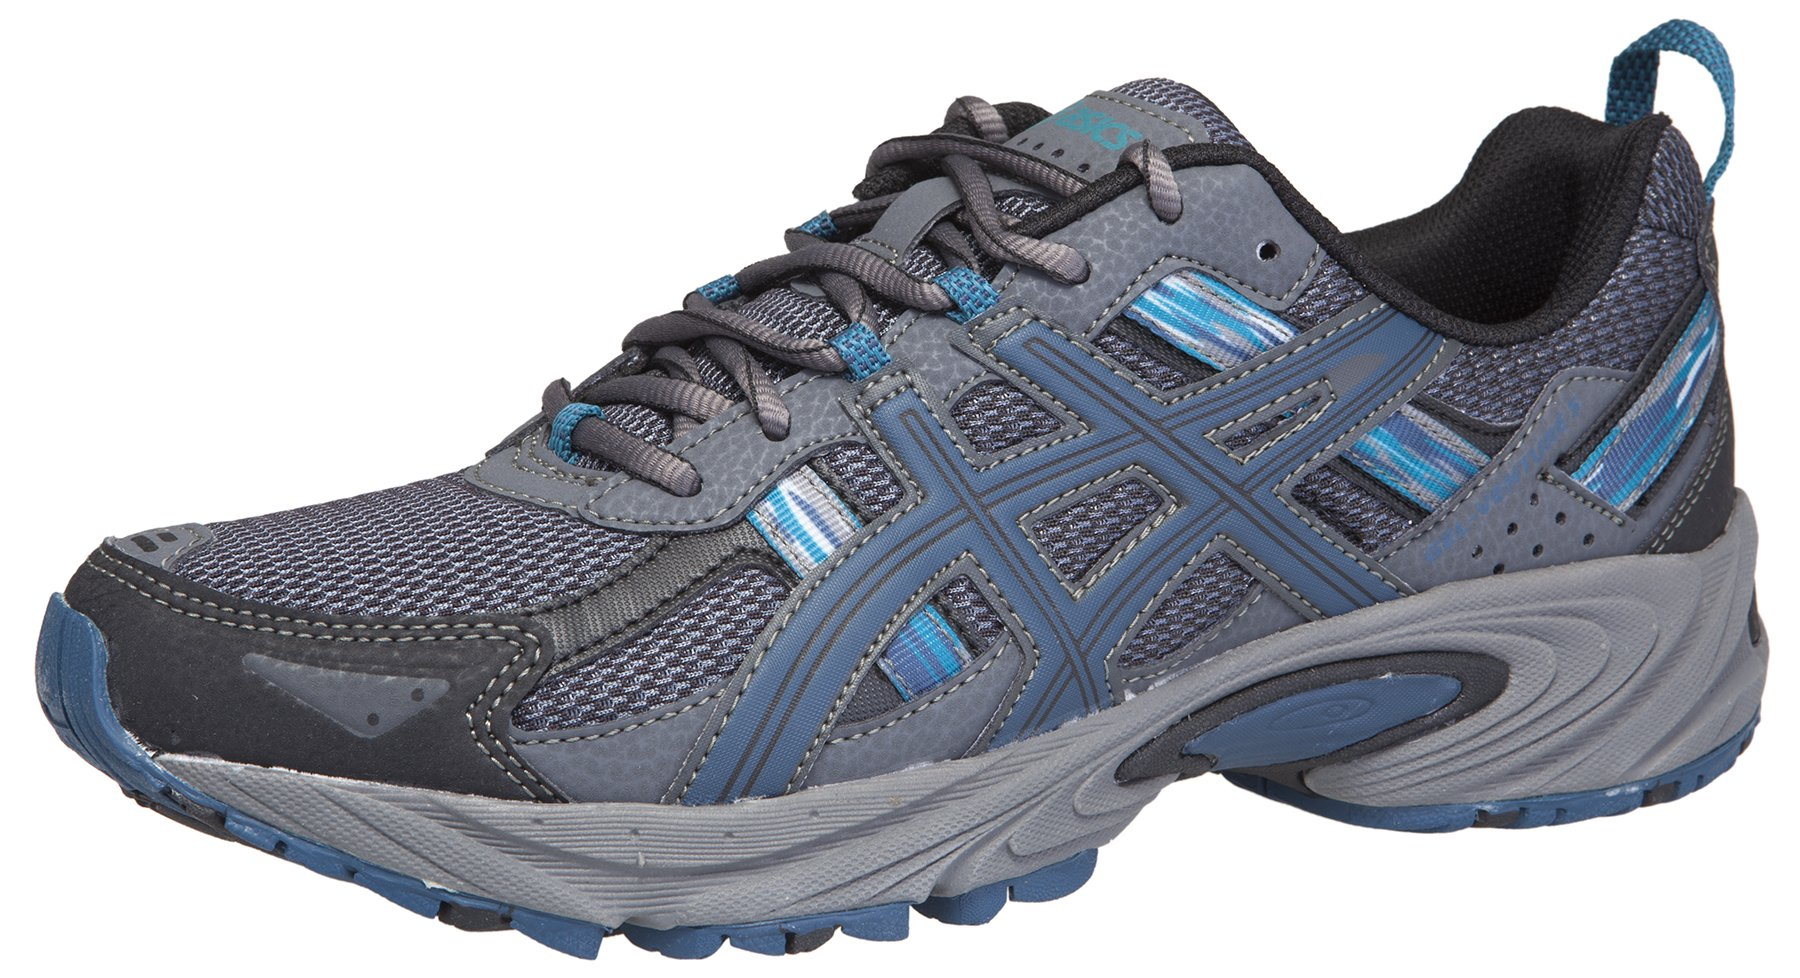 ASICS Men's Gel-Venture 5 Running Shoe (7.5 D(M) US, Black/Ink/Ocean) by ASICS (Image #1)